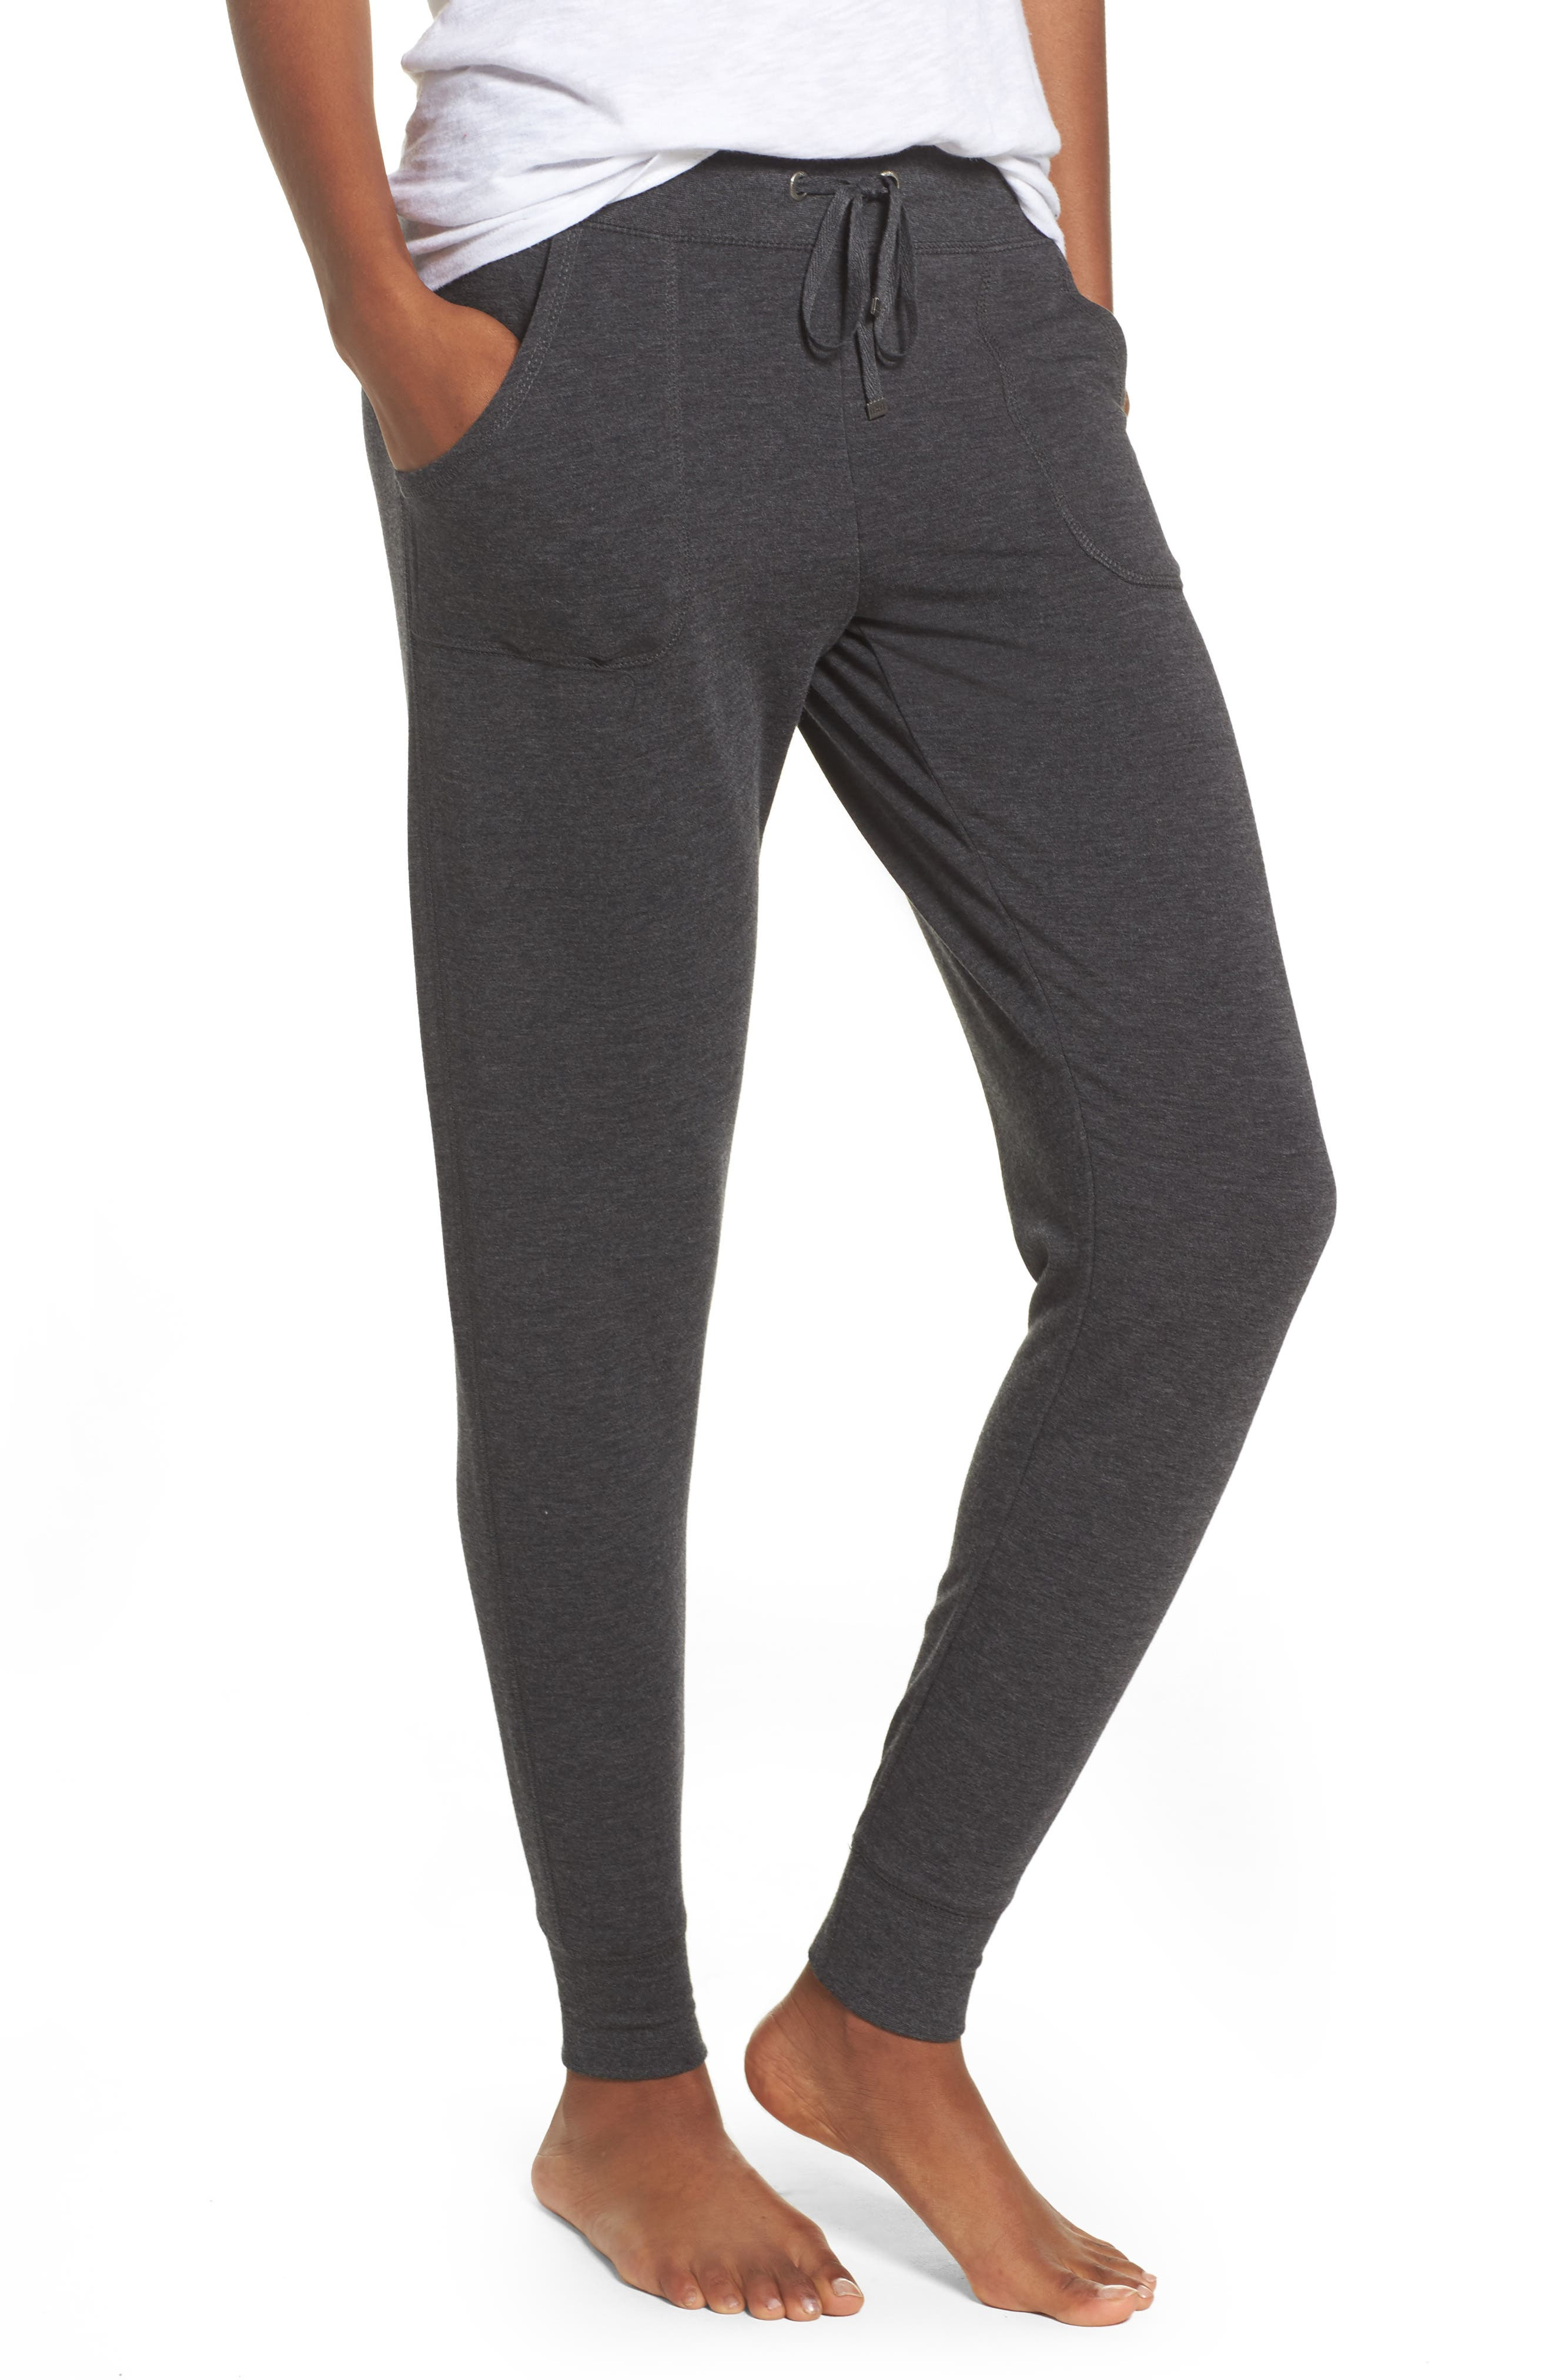 All About It Lounge Pants,                             Main thumbnail 1, color,                             030